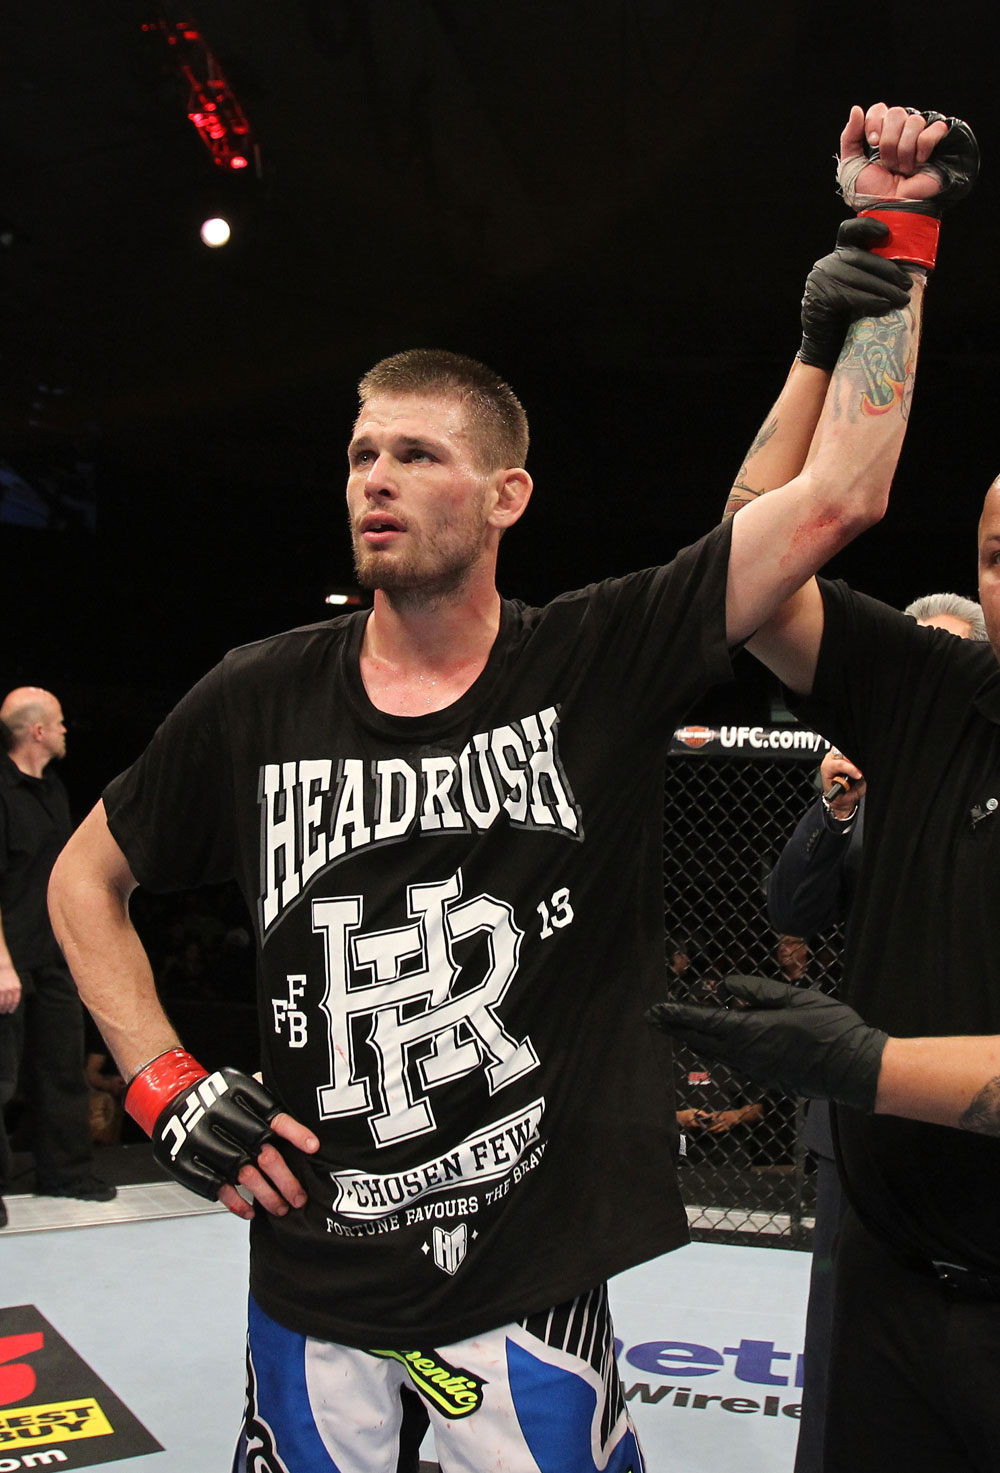 OMAHA, NE - FEBRUARY 15:  Tim Means reacts after defeating Bernardo Magalhaes during the UFC on FUEL TV event at Omaha Civic Auditorium on February 15, 2012 in Omaha, Nebraska.  (Photo by Josh Hedges/Zuffa LLC/Zuffa LLC via Getty Images) *** Local Caption *** Tim Means